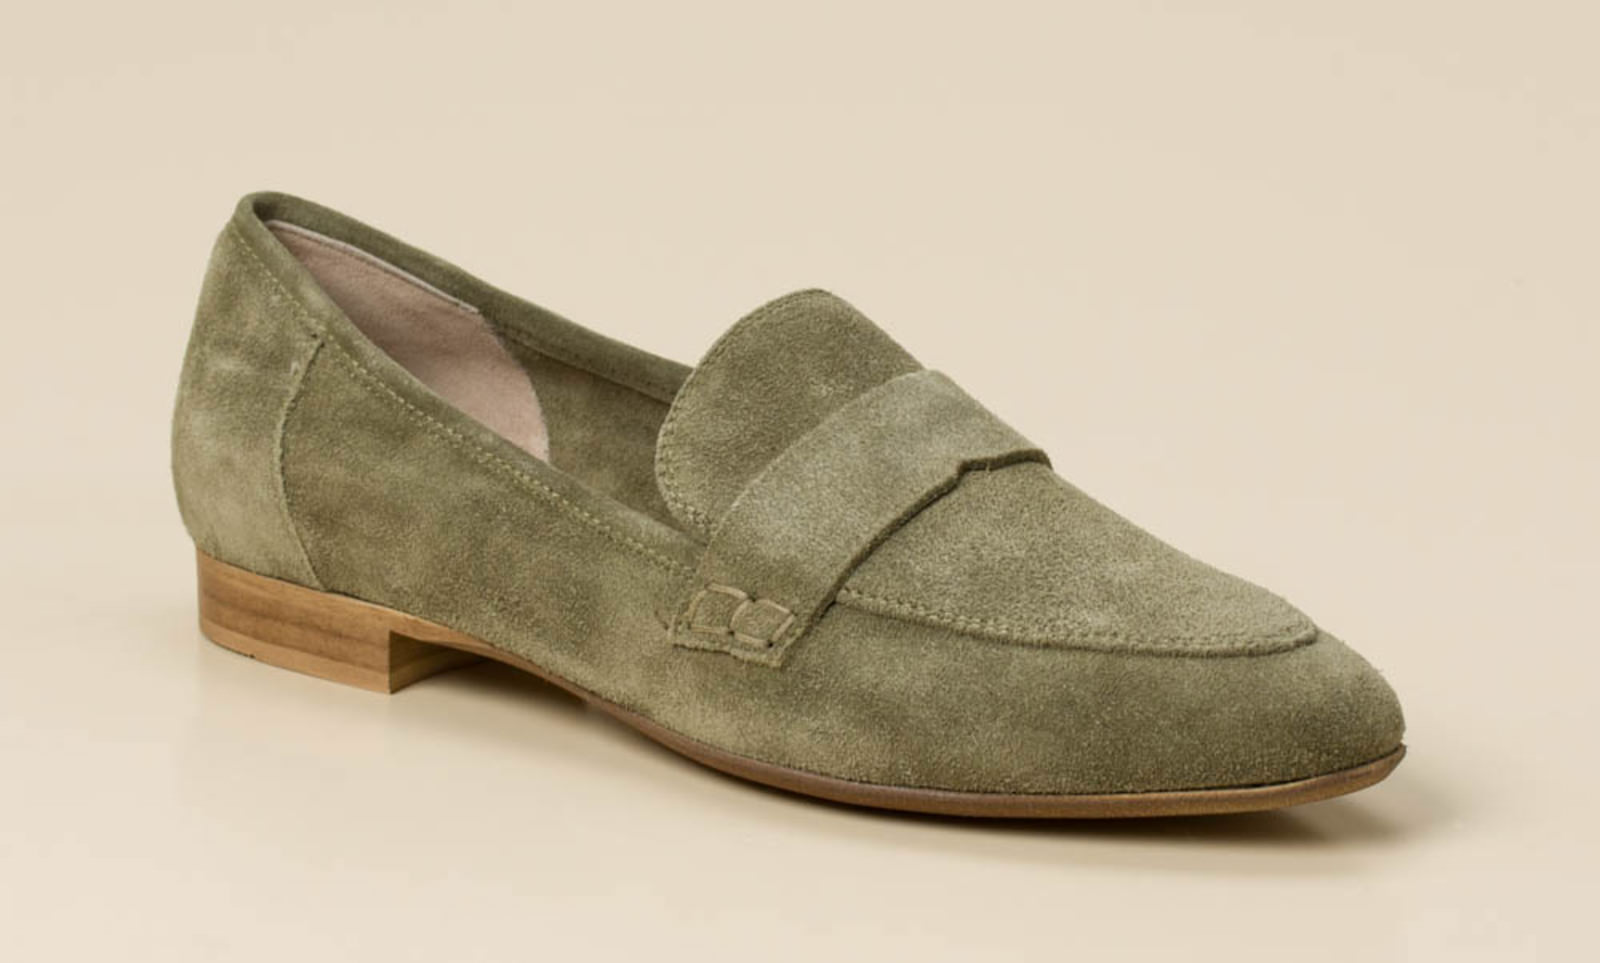 Donna Carolina Damen Slipper in khaki oliv kaufen   Zumnorde Online-Shop 59696cd8ed